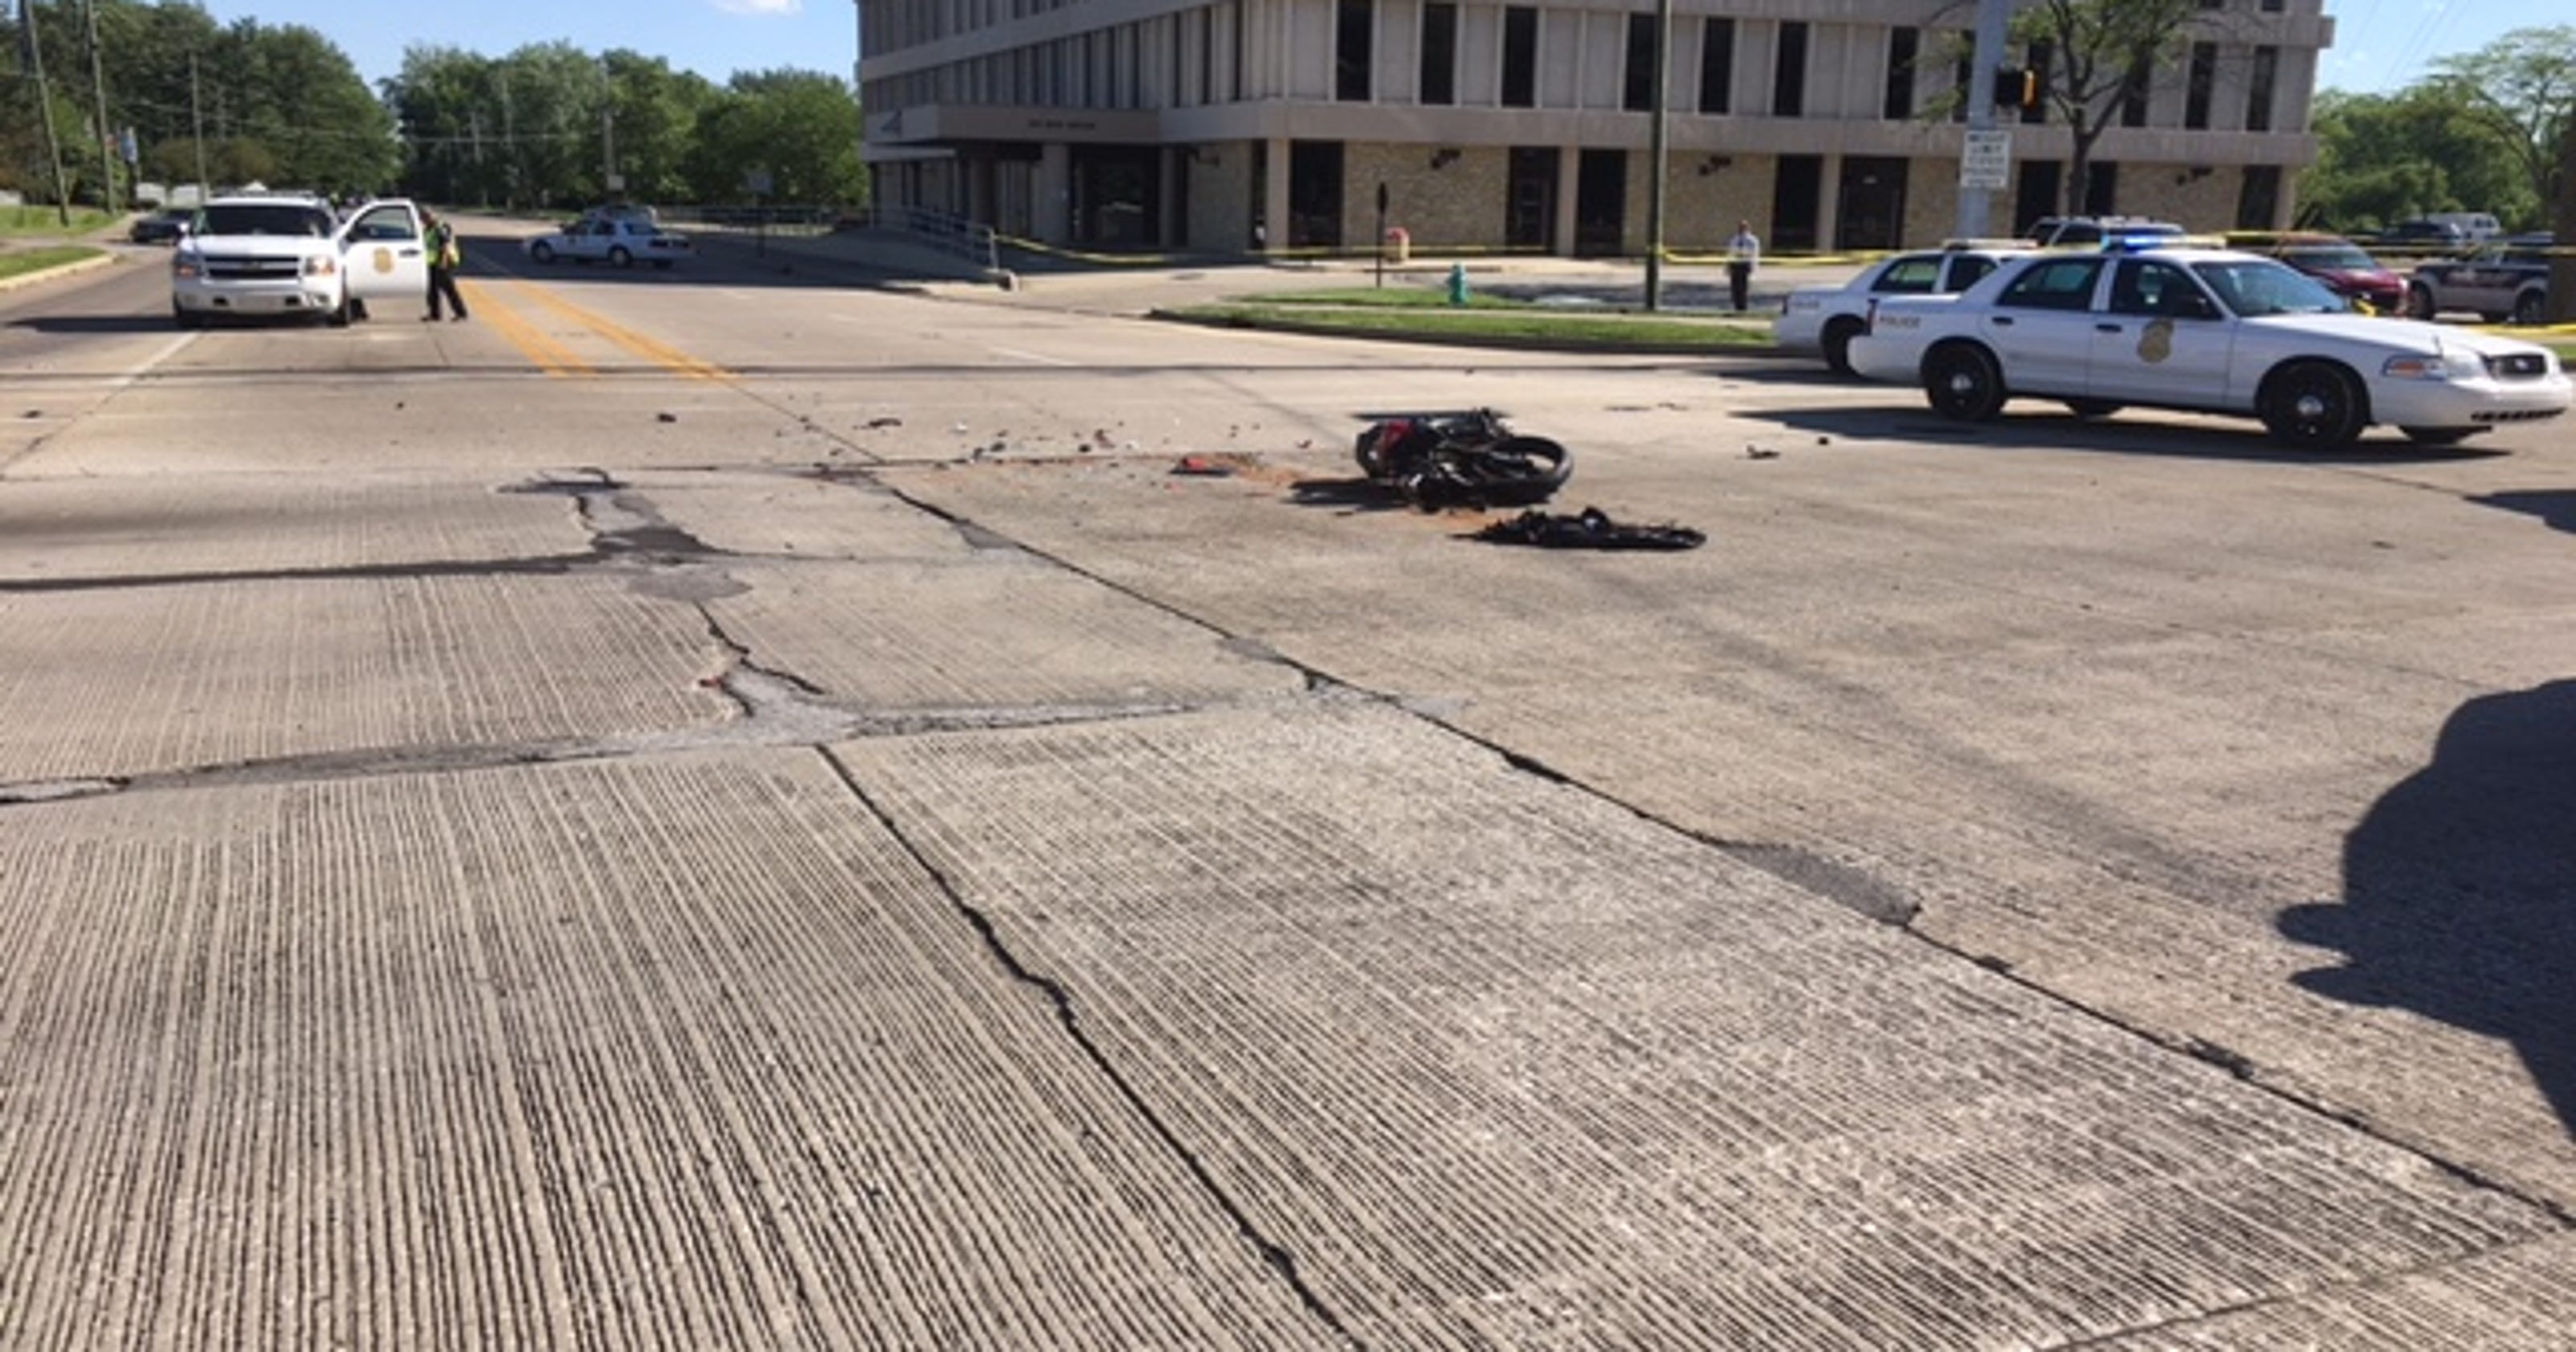 19 Year Old Killed In Motorcycle Crash On City S Northwest Side